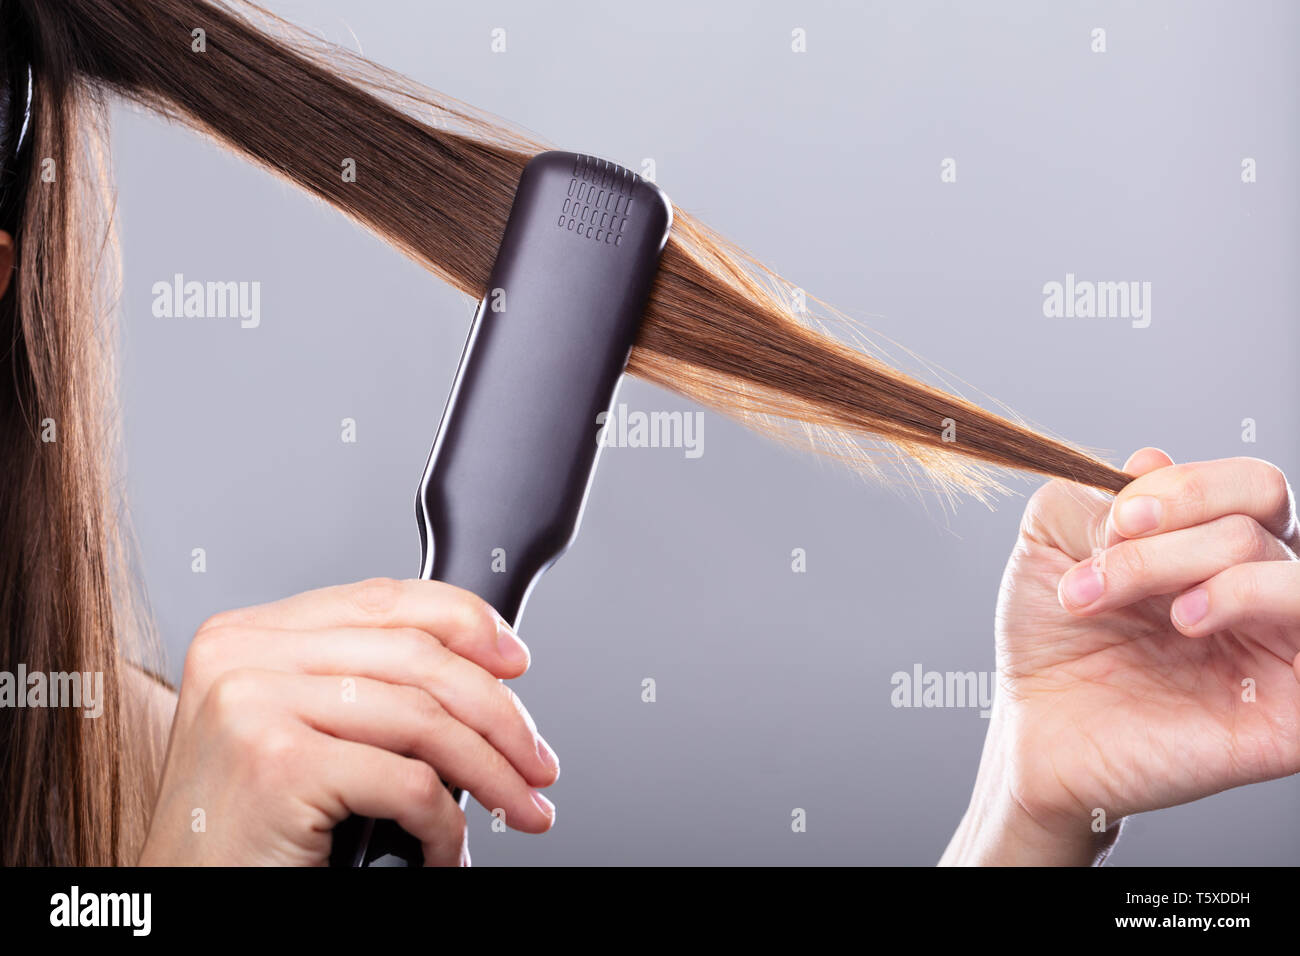 Close-up Of Woman Straightening Hair With Straightener Against Gray Background - Stock Image